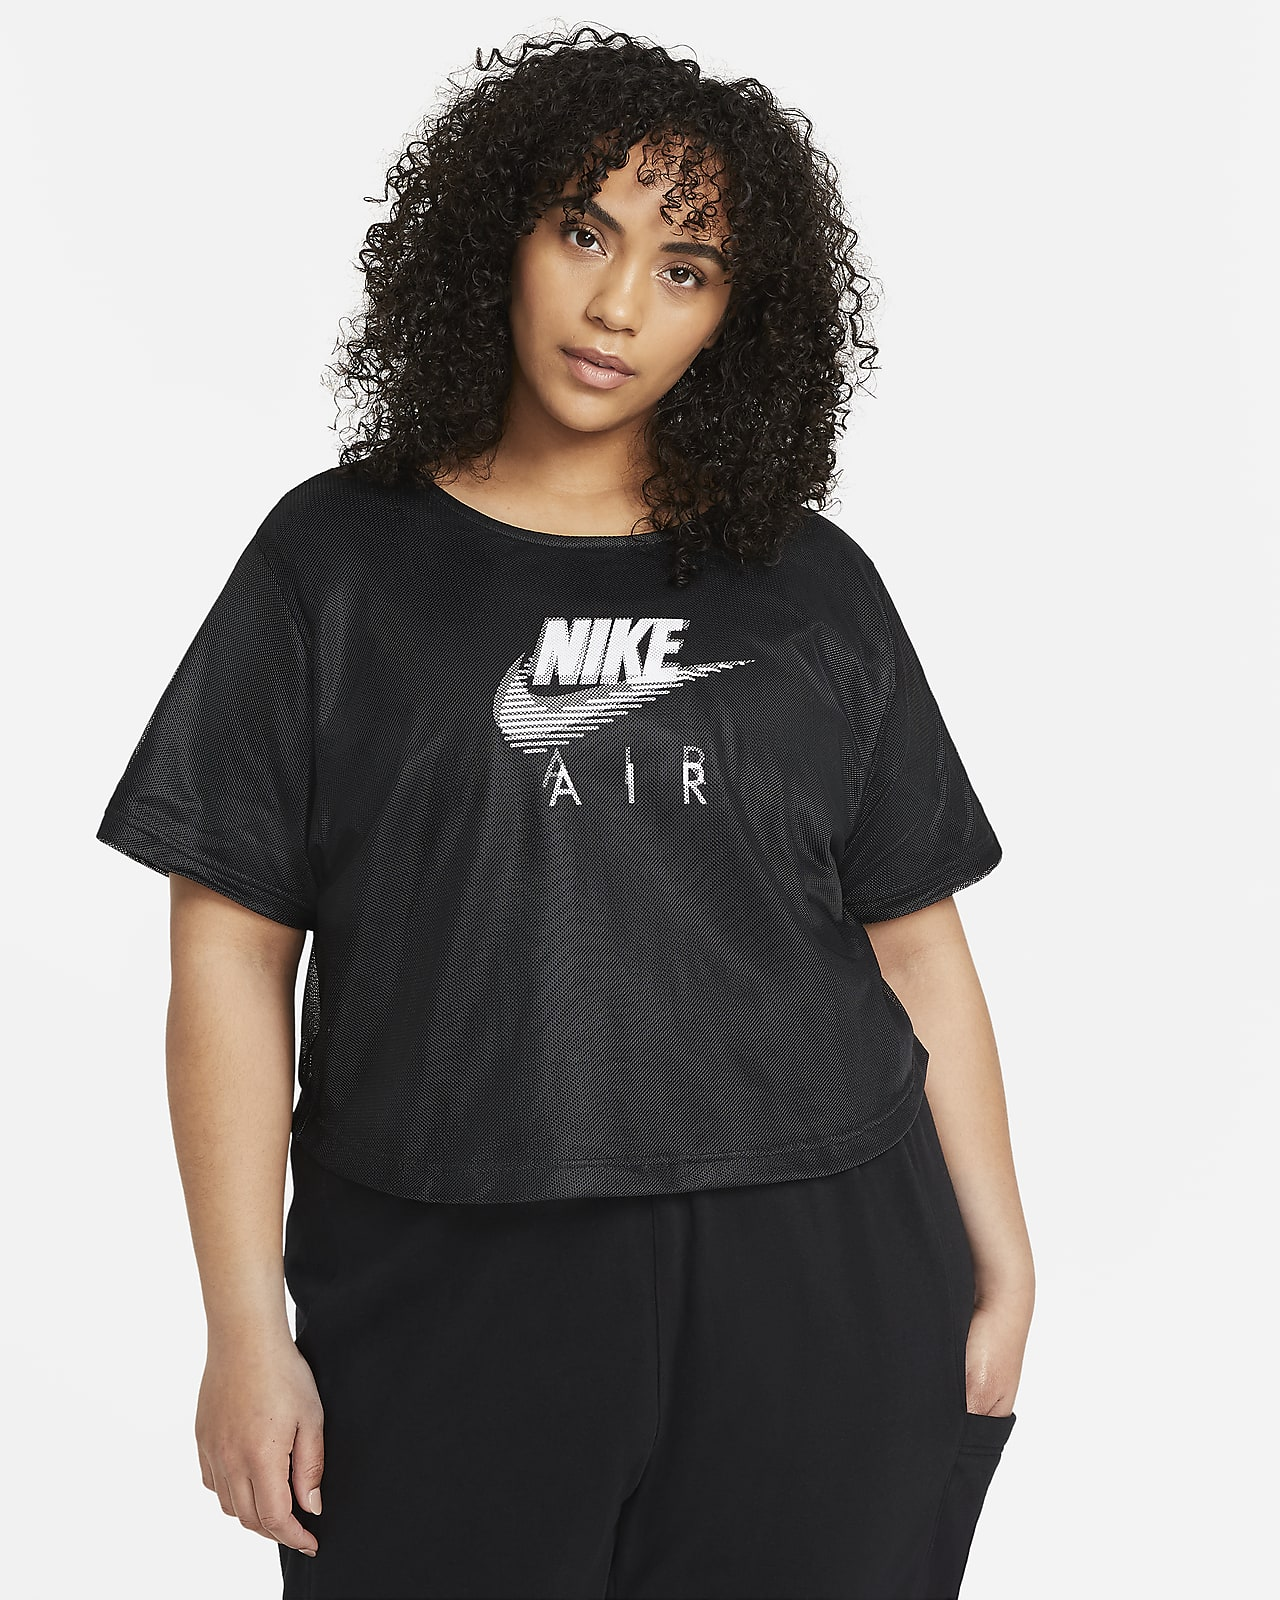 Nike Air Women's Mesh Short-Sleeve Top (Plus Size)